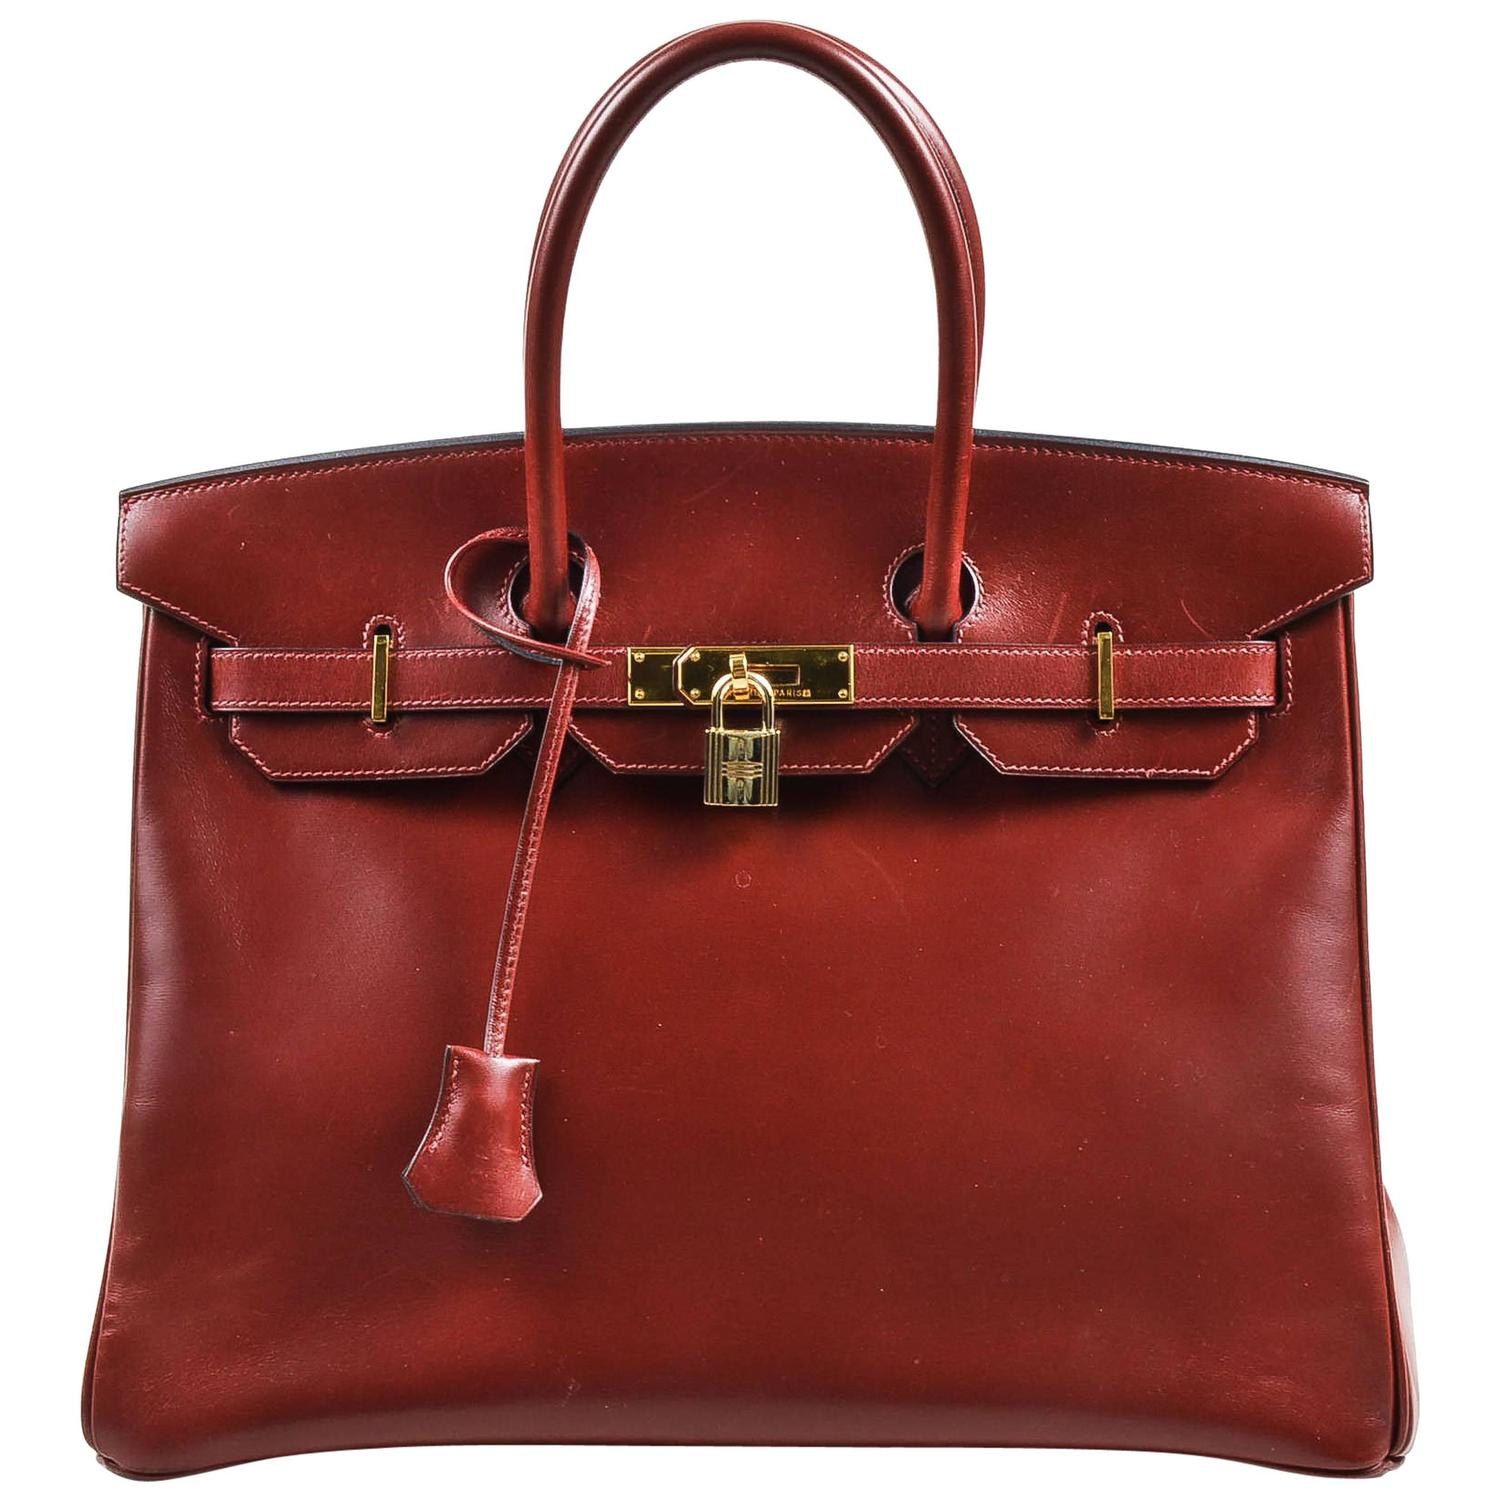 handbags hermes outlet - Vintage Herm��s Top Handle Bags - 781 For Sale at 1stdibs - Page 6